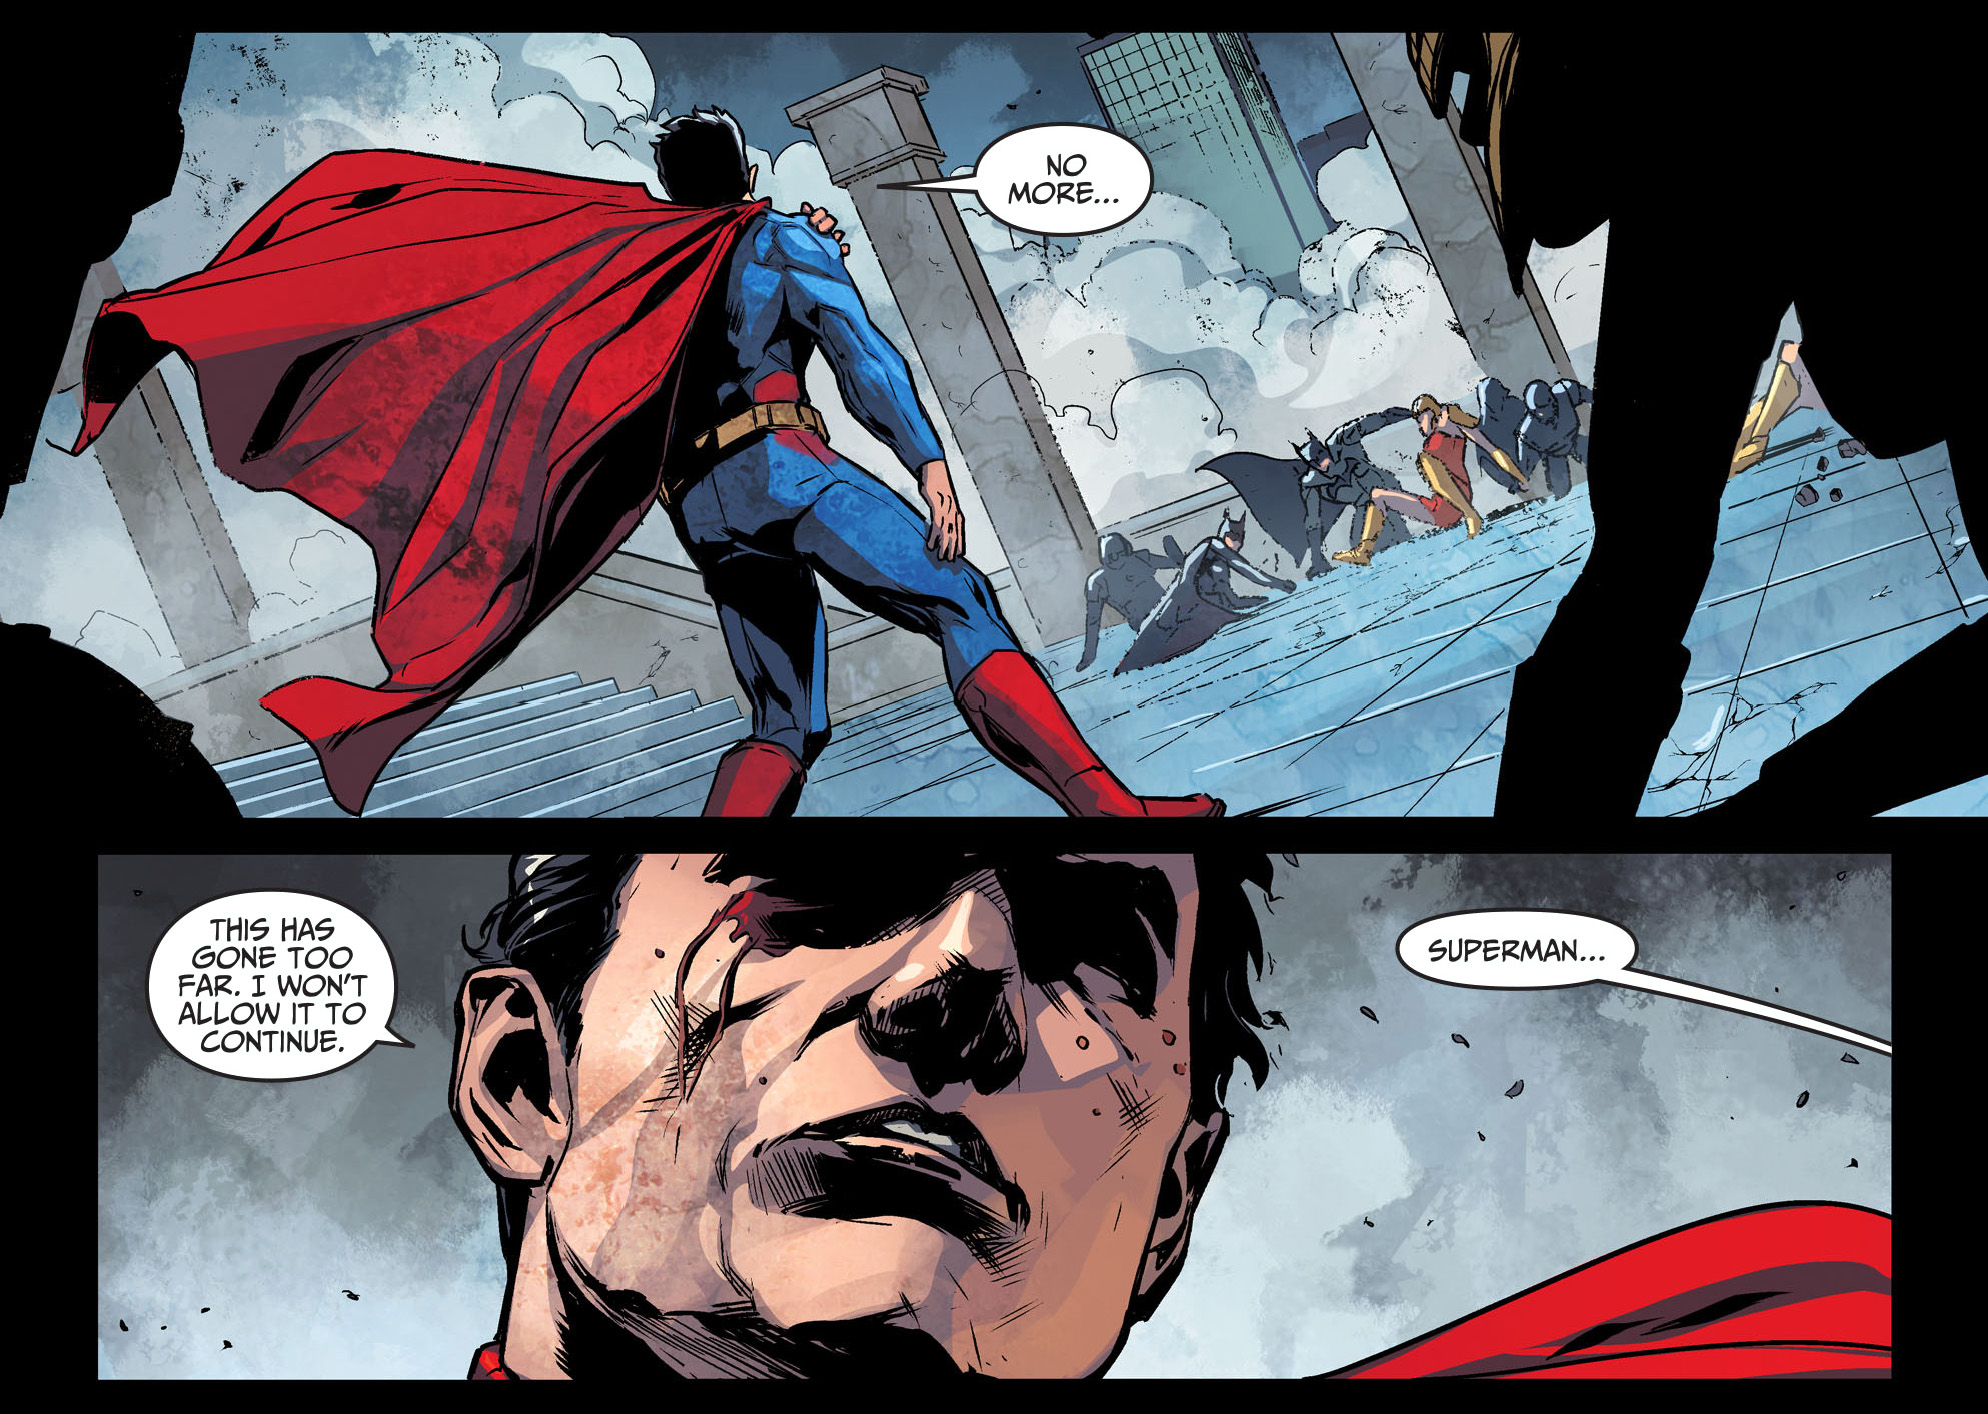 the gods of olympus challenges superman